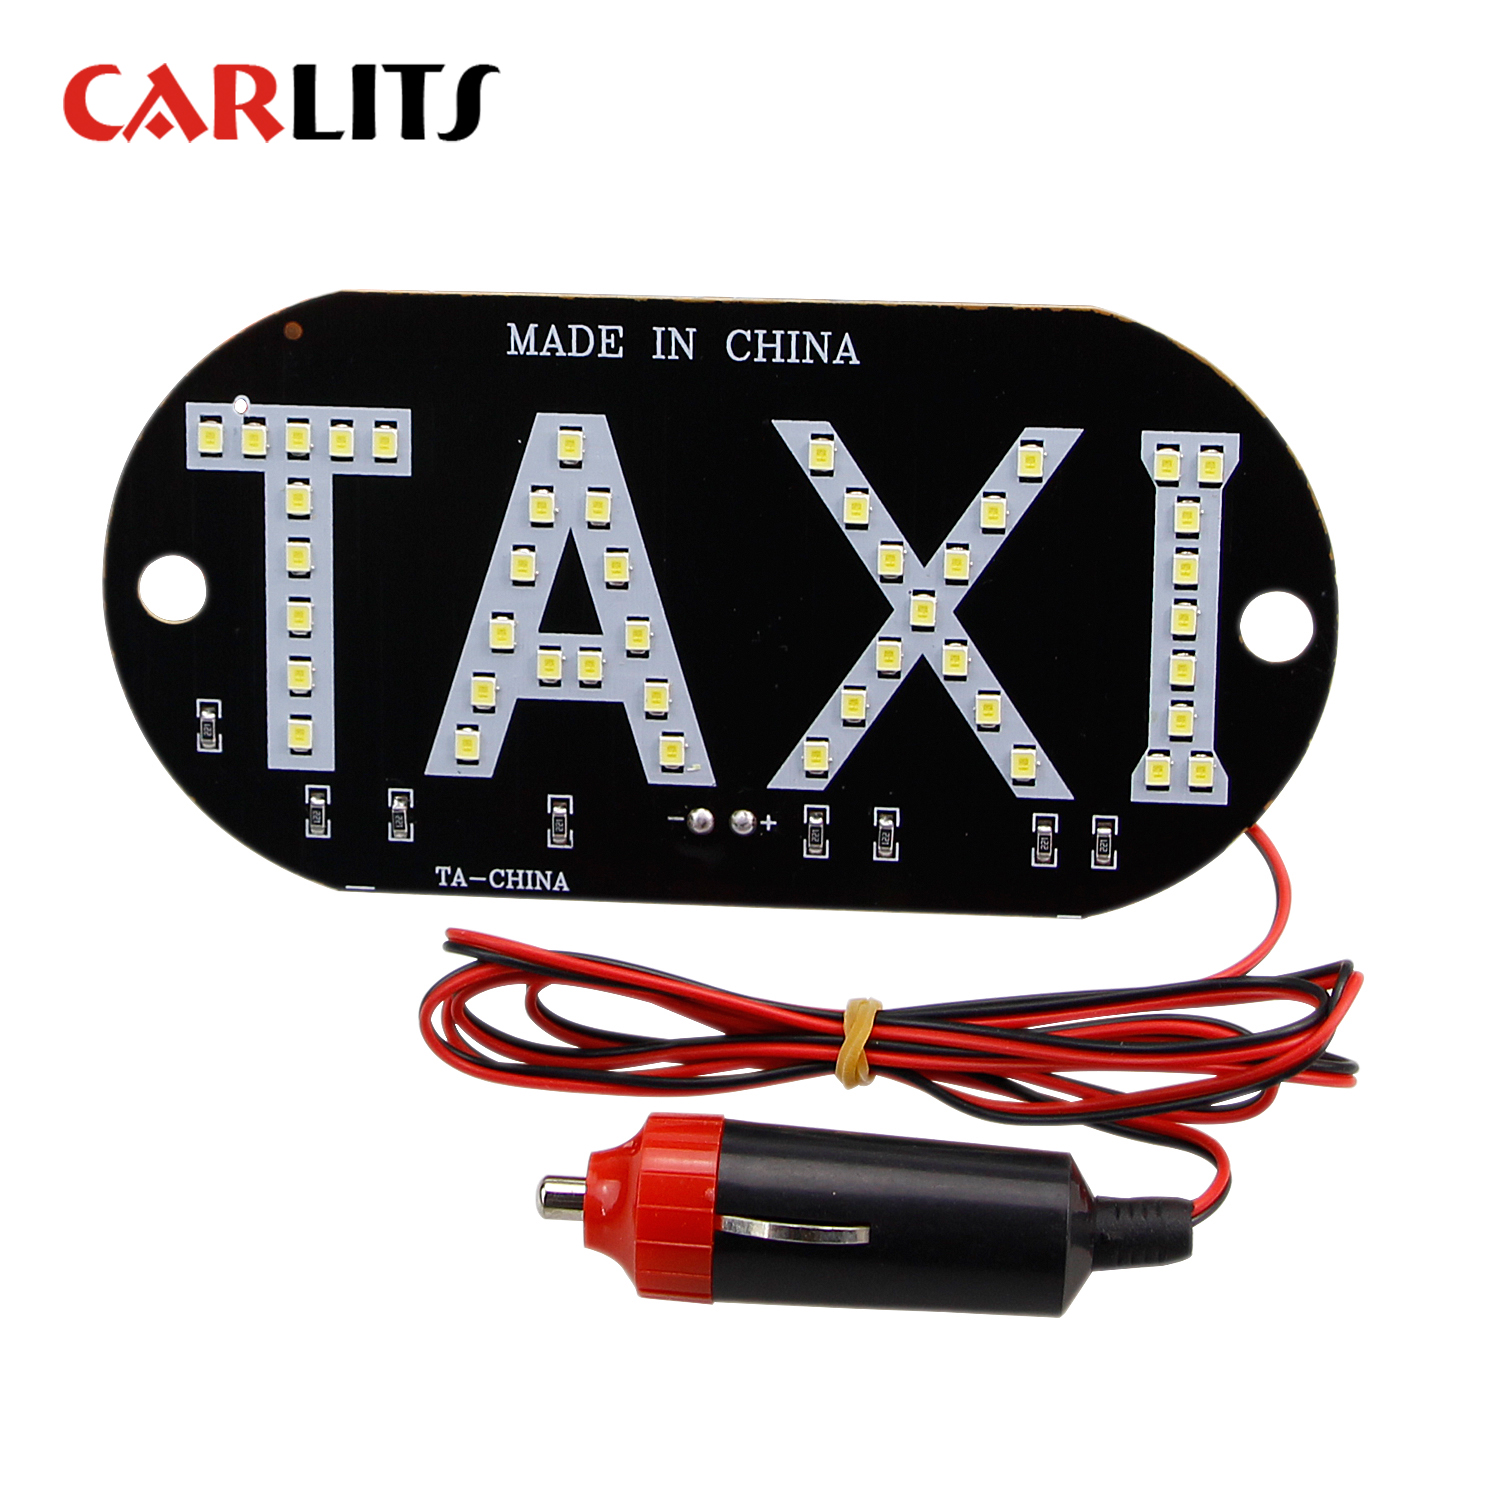 CARLITS 1pcs/lot Taxi Led Car Windscreen Cab Indicator Lamp Sign Blue Red Green White LED Windshield Taxi Light Lamp 12V